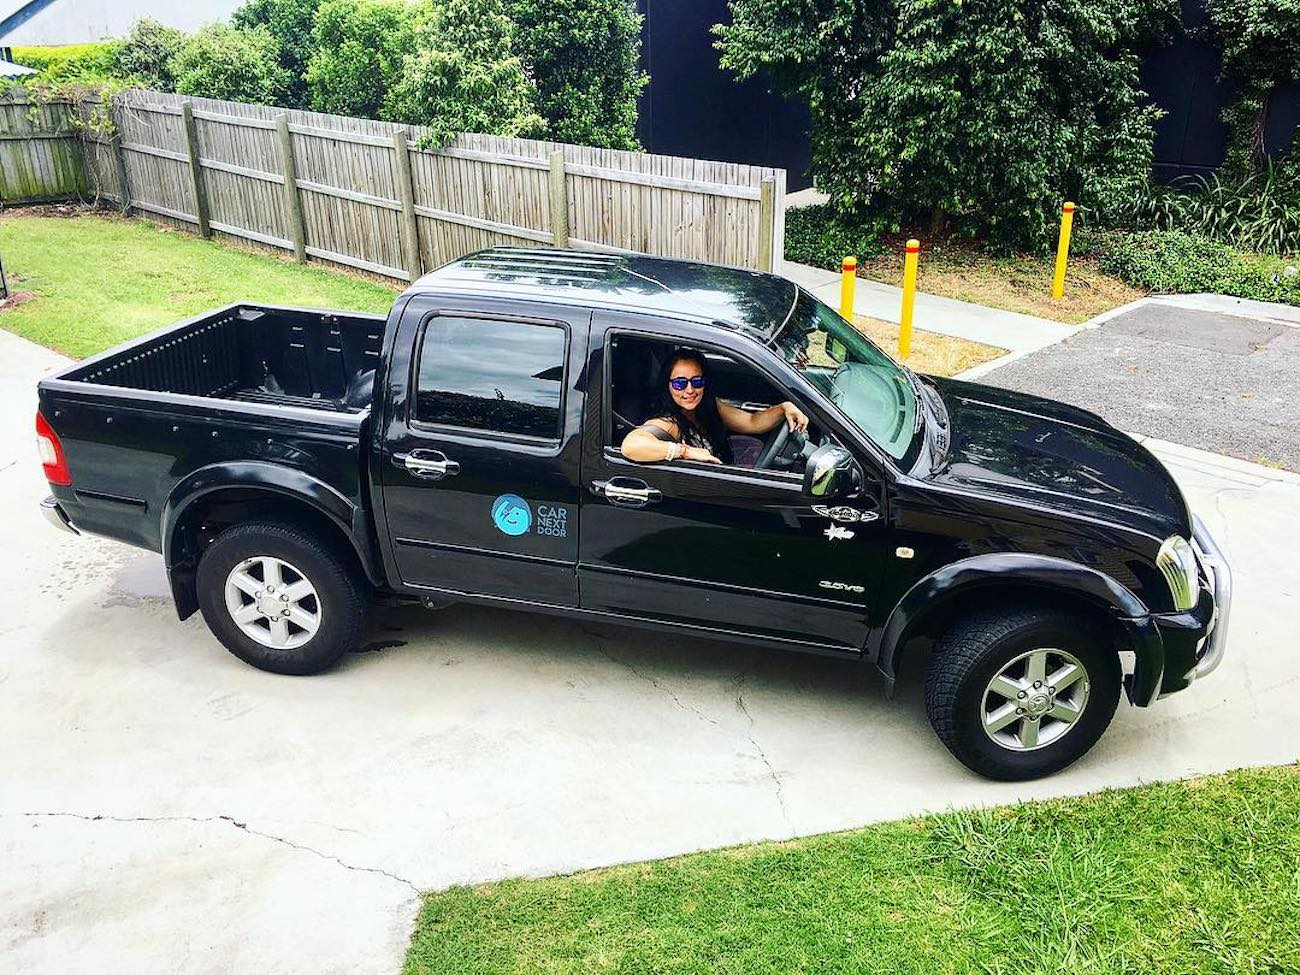 Car Share in Newcastle, NSW - Peer-to-Peer car sharing